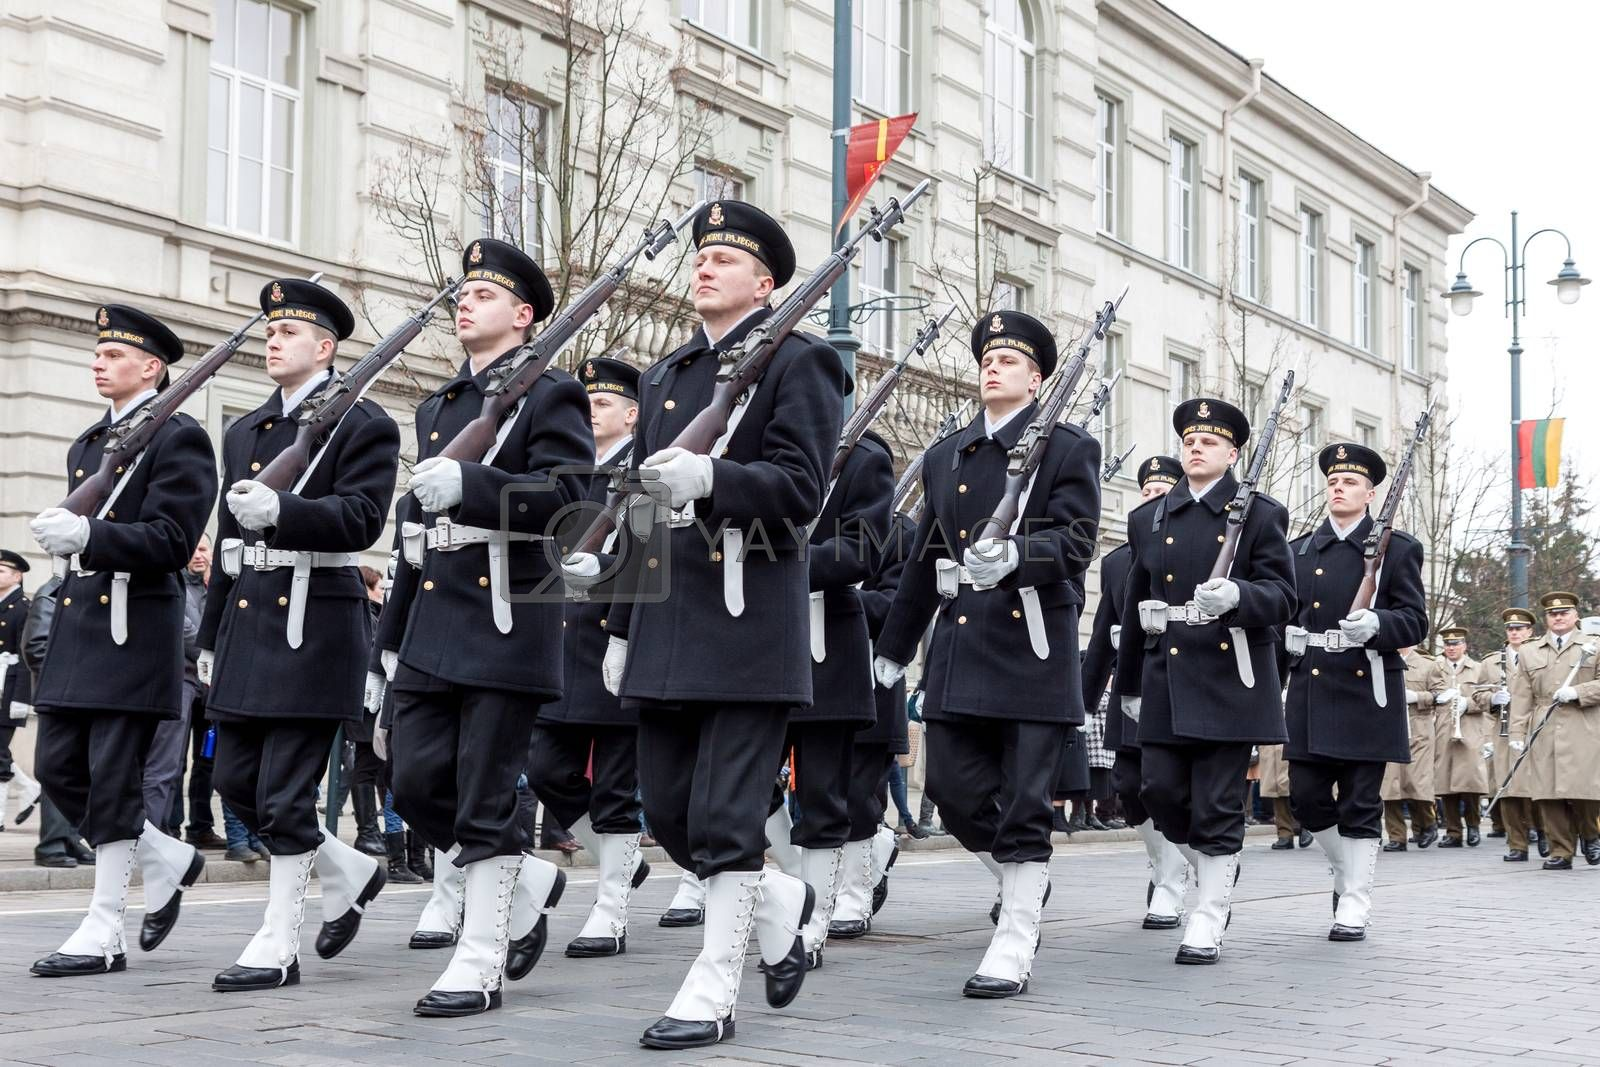 VILNIUS, LITHUANIA - MARCH 11, 2015: Lithuania Marine Corps marching at Independence Day Parade in Vilnius, capital of Lithuania. Corps wearing black-white dress uniforms and carrying rifles